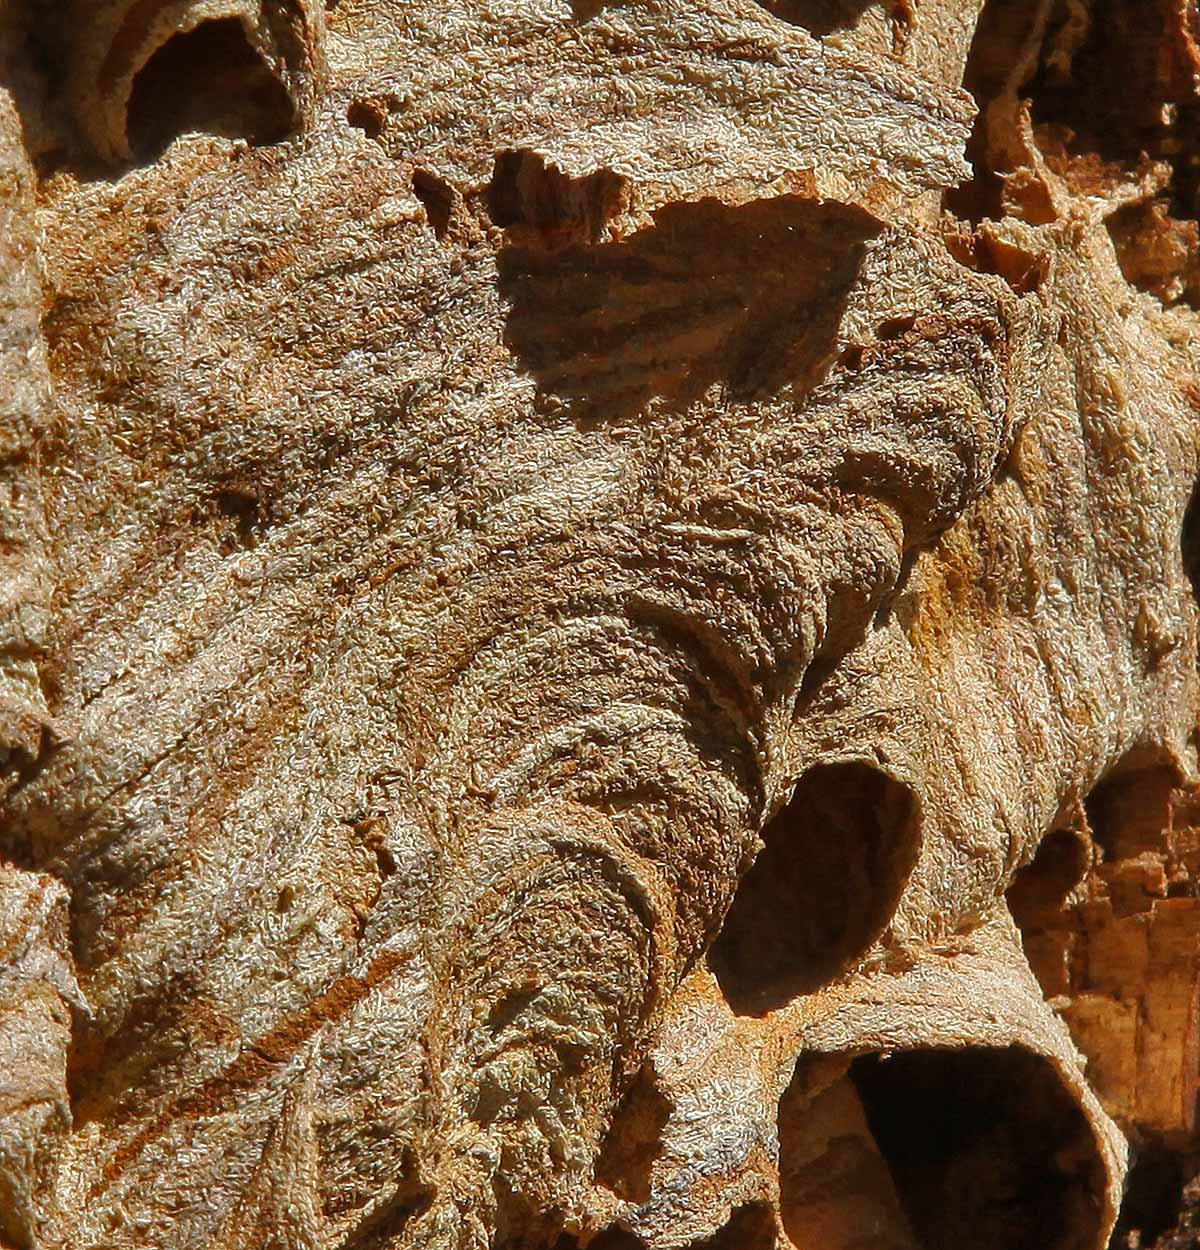 european hornet nest close img aw author sava gre gregory and verena